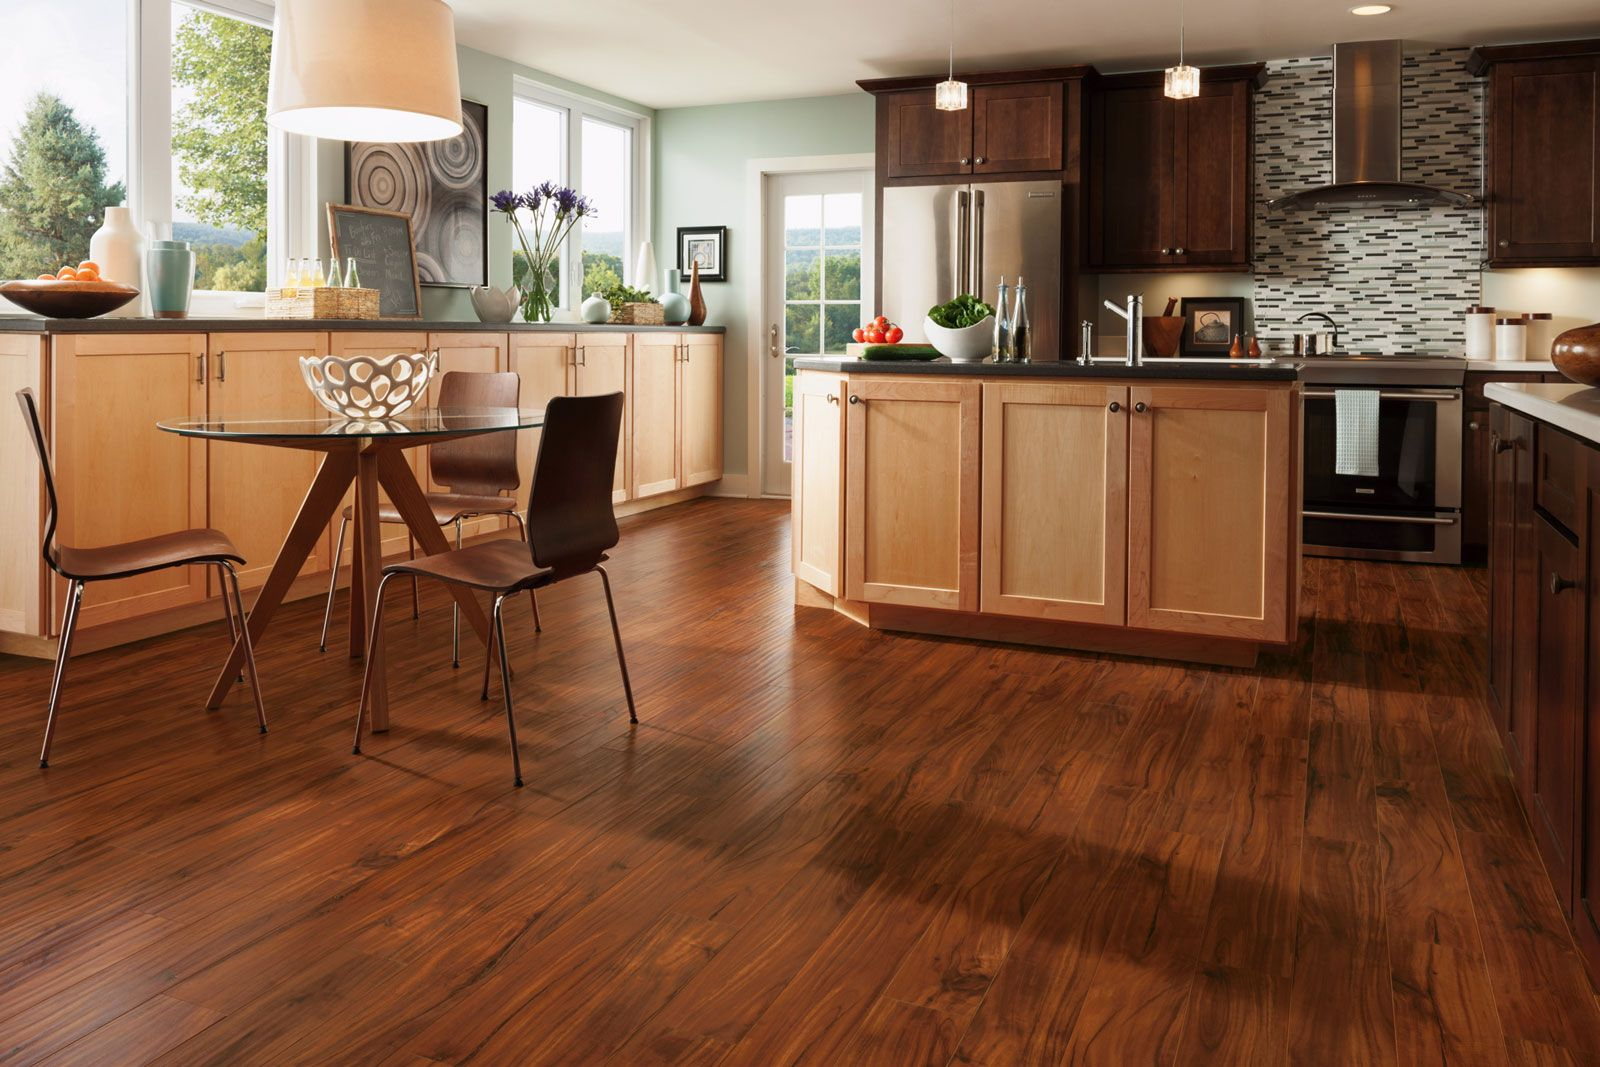 Home interior design with wood laminate flooring exciting spacious home interior design with wood laminate flooring exciting spacious kitchen with dark wood laminate floor dailygadgetfo Choice Image